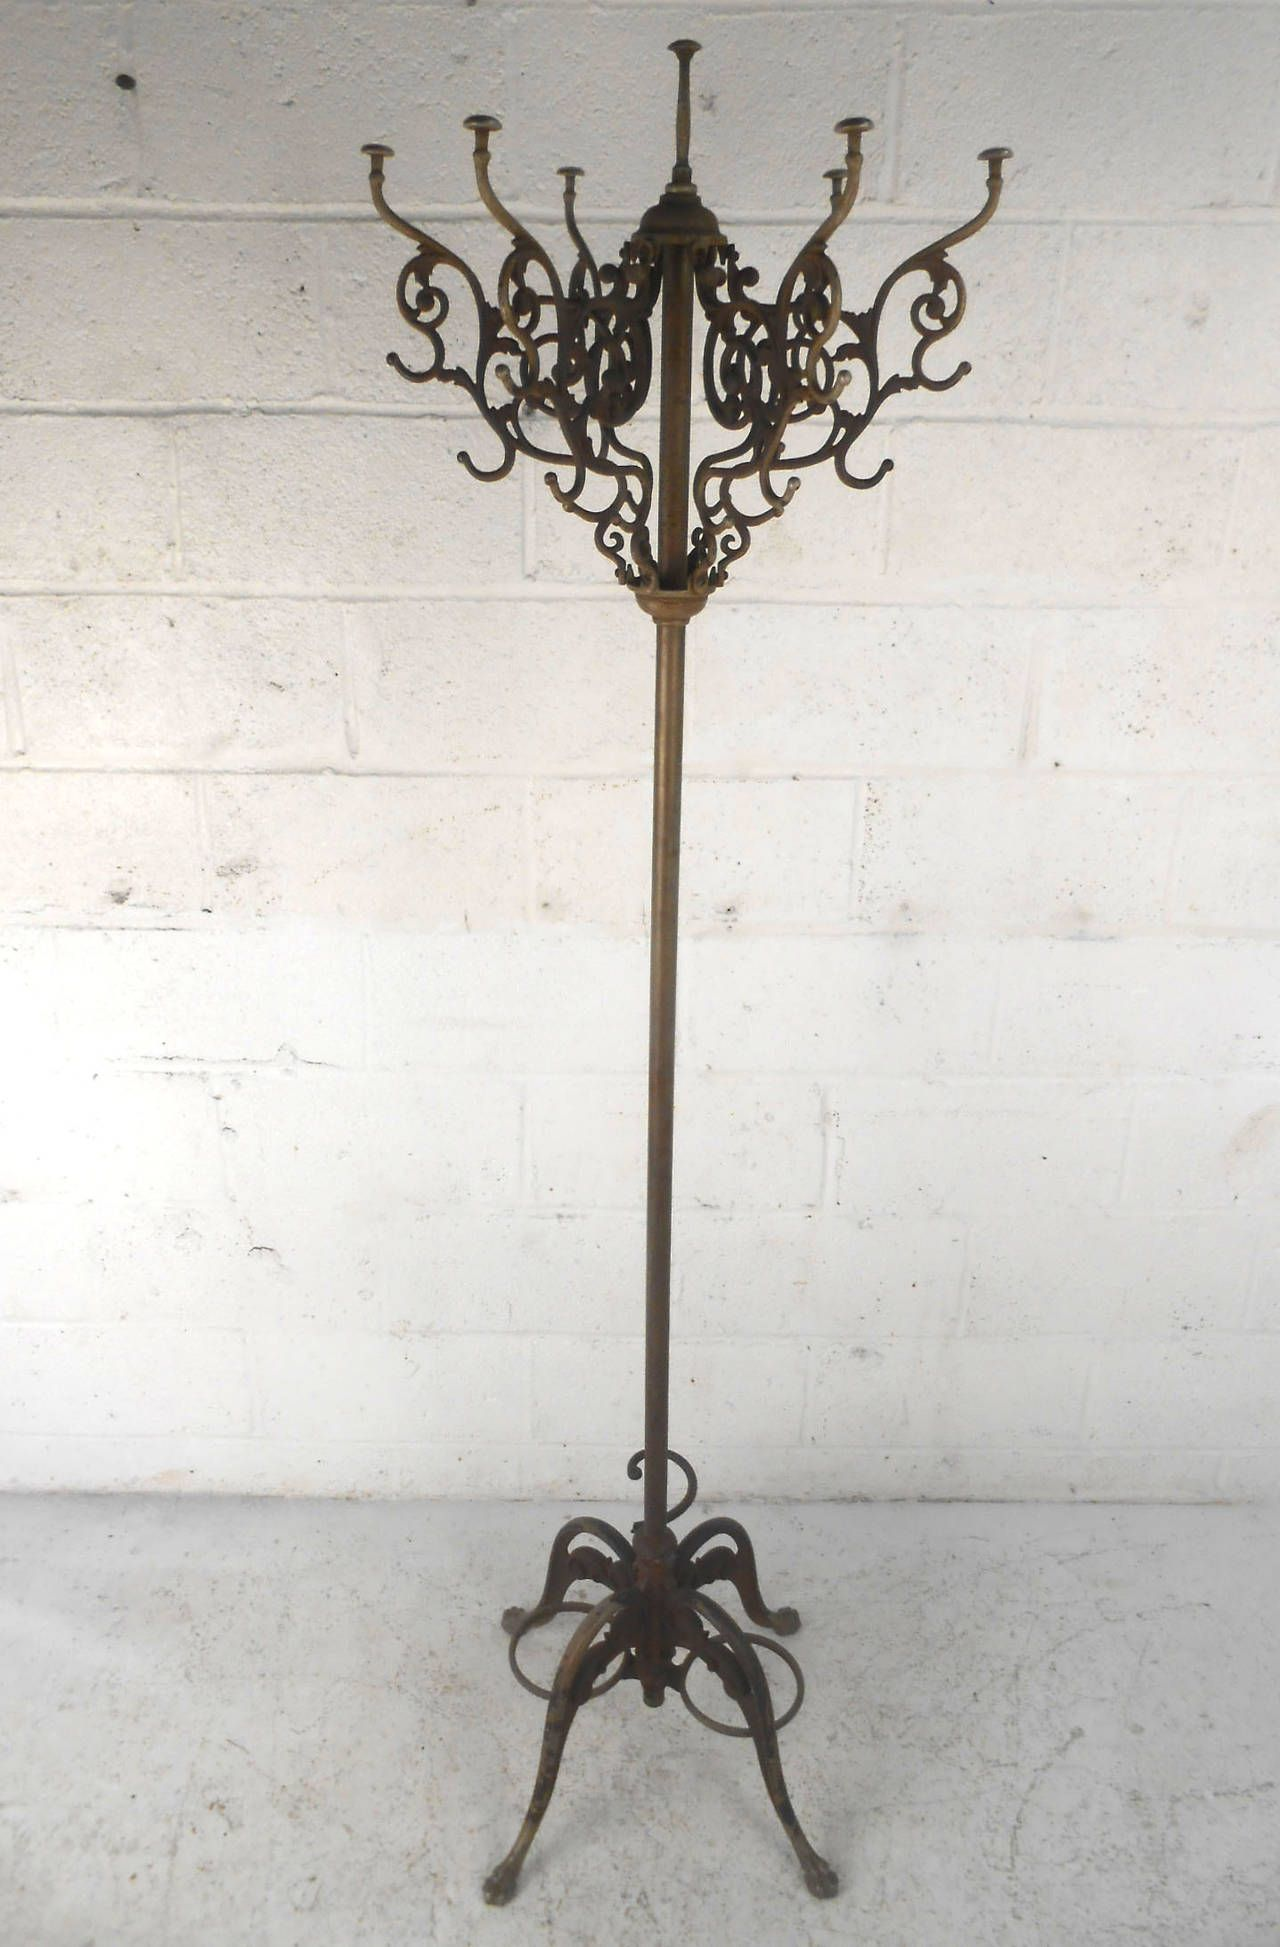 new coat rolling outstanding rack regard cast top home to at steel and modern decor stand vintage with iron antique clothes regarding